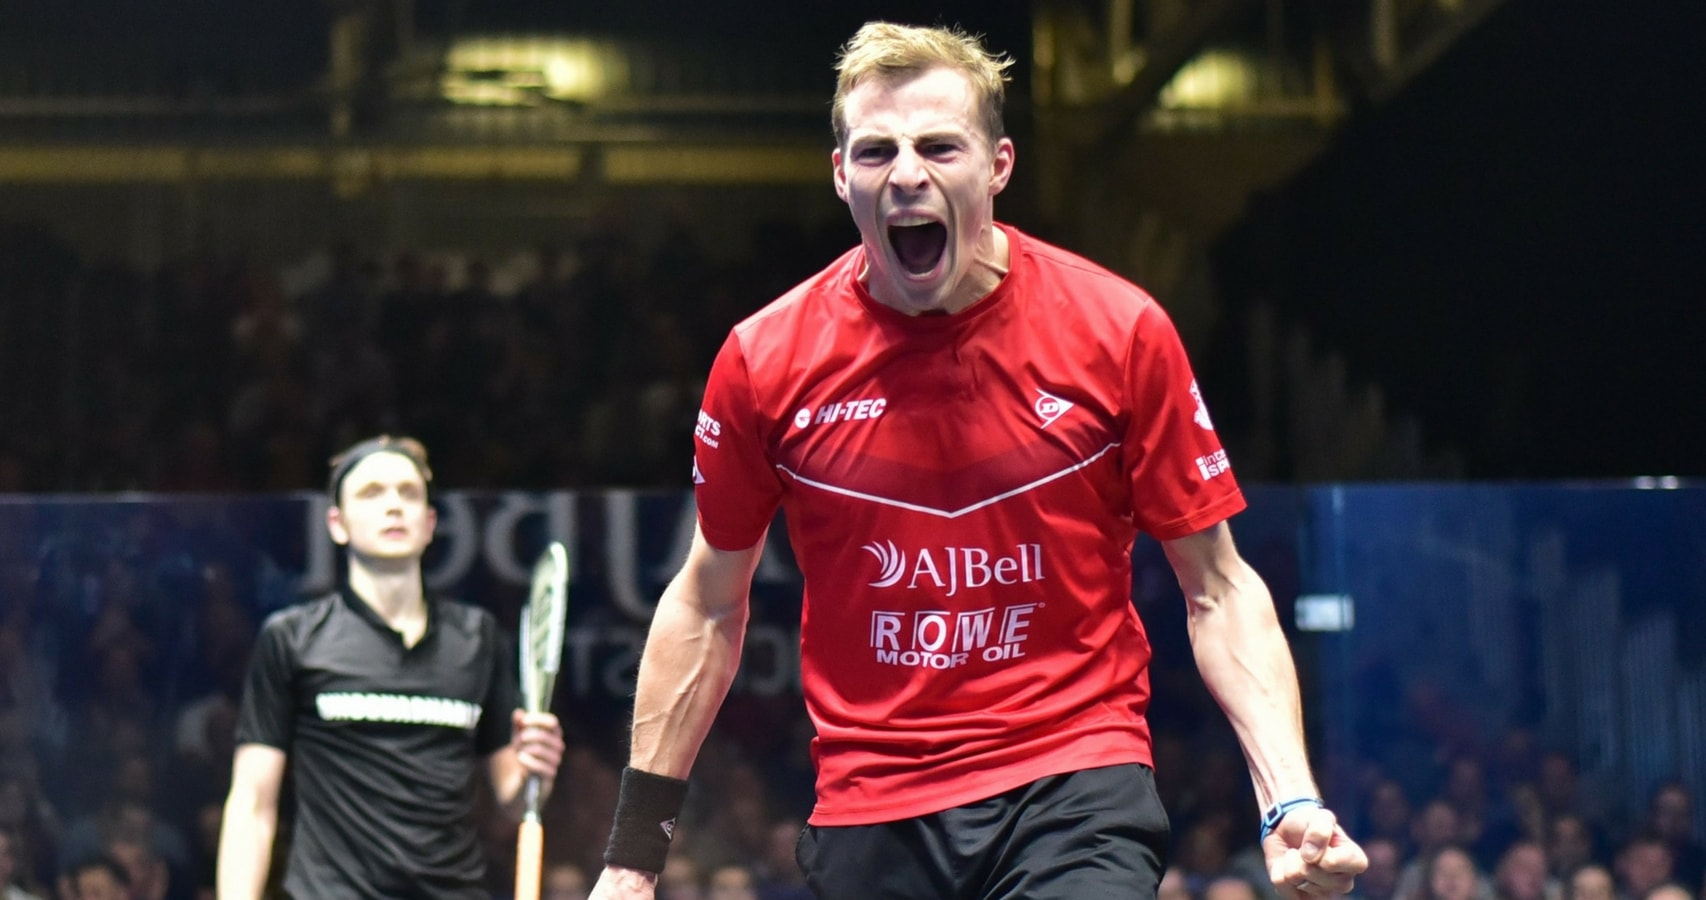 Nick Matthew will be looking to add a fourth title to his collection in the Allam British Open in Hull